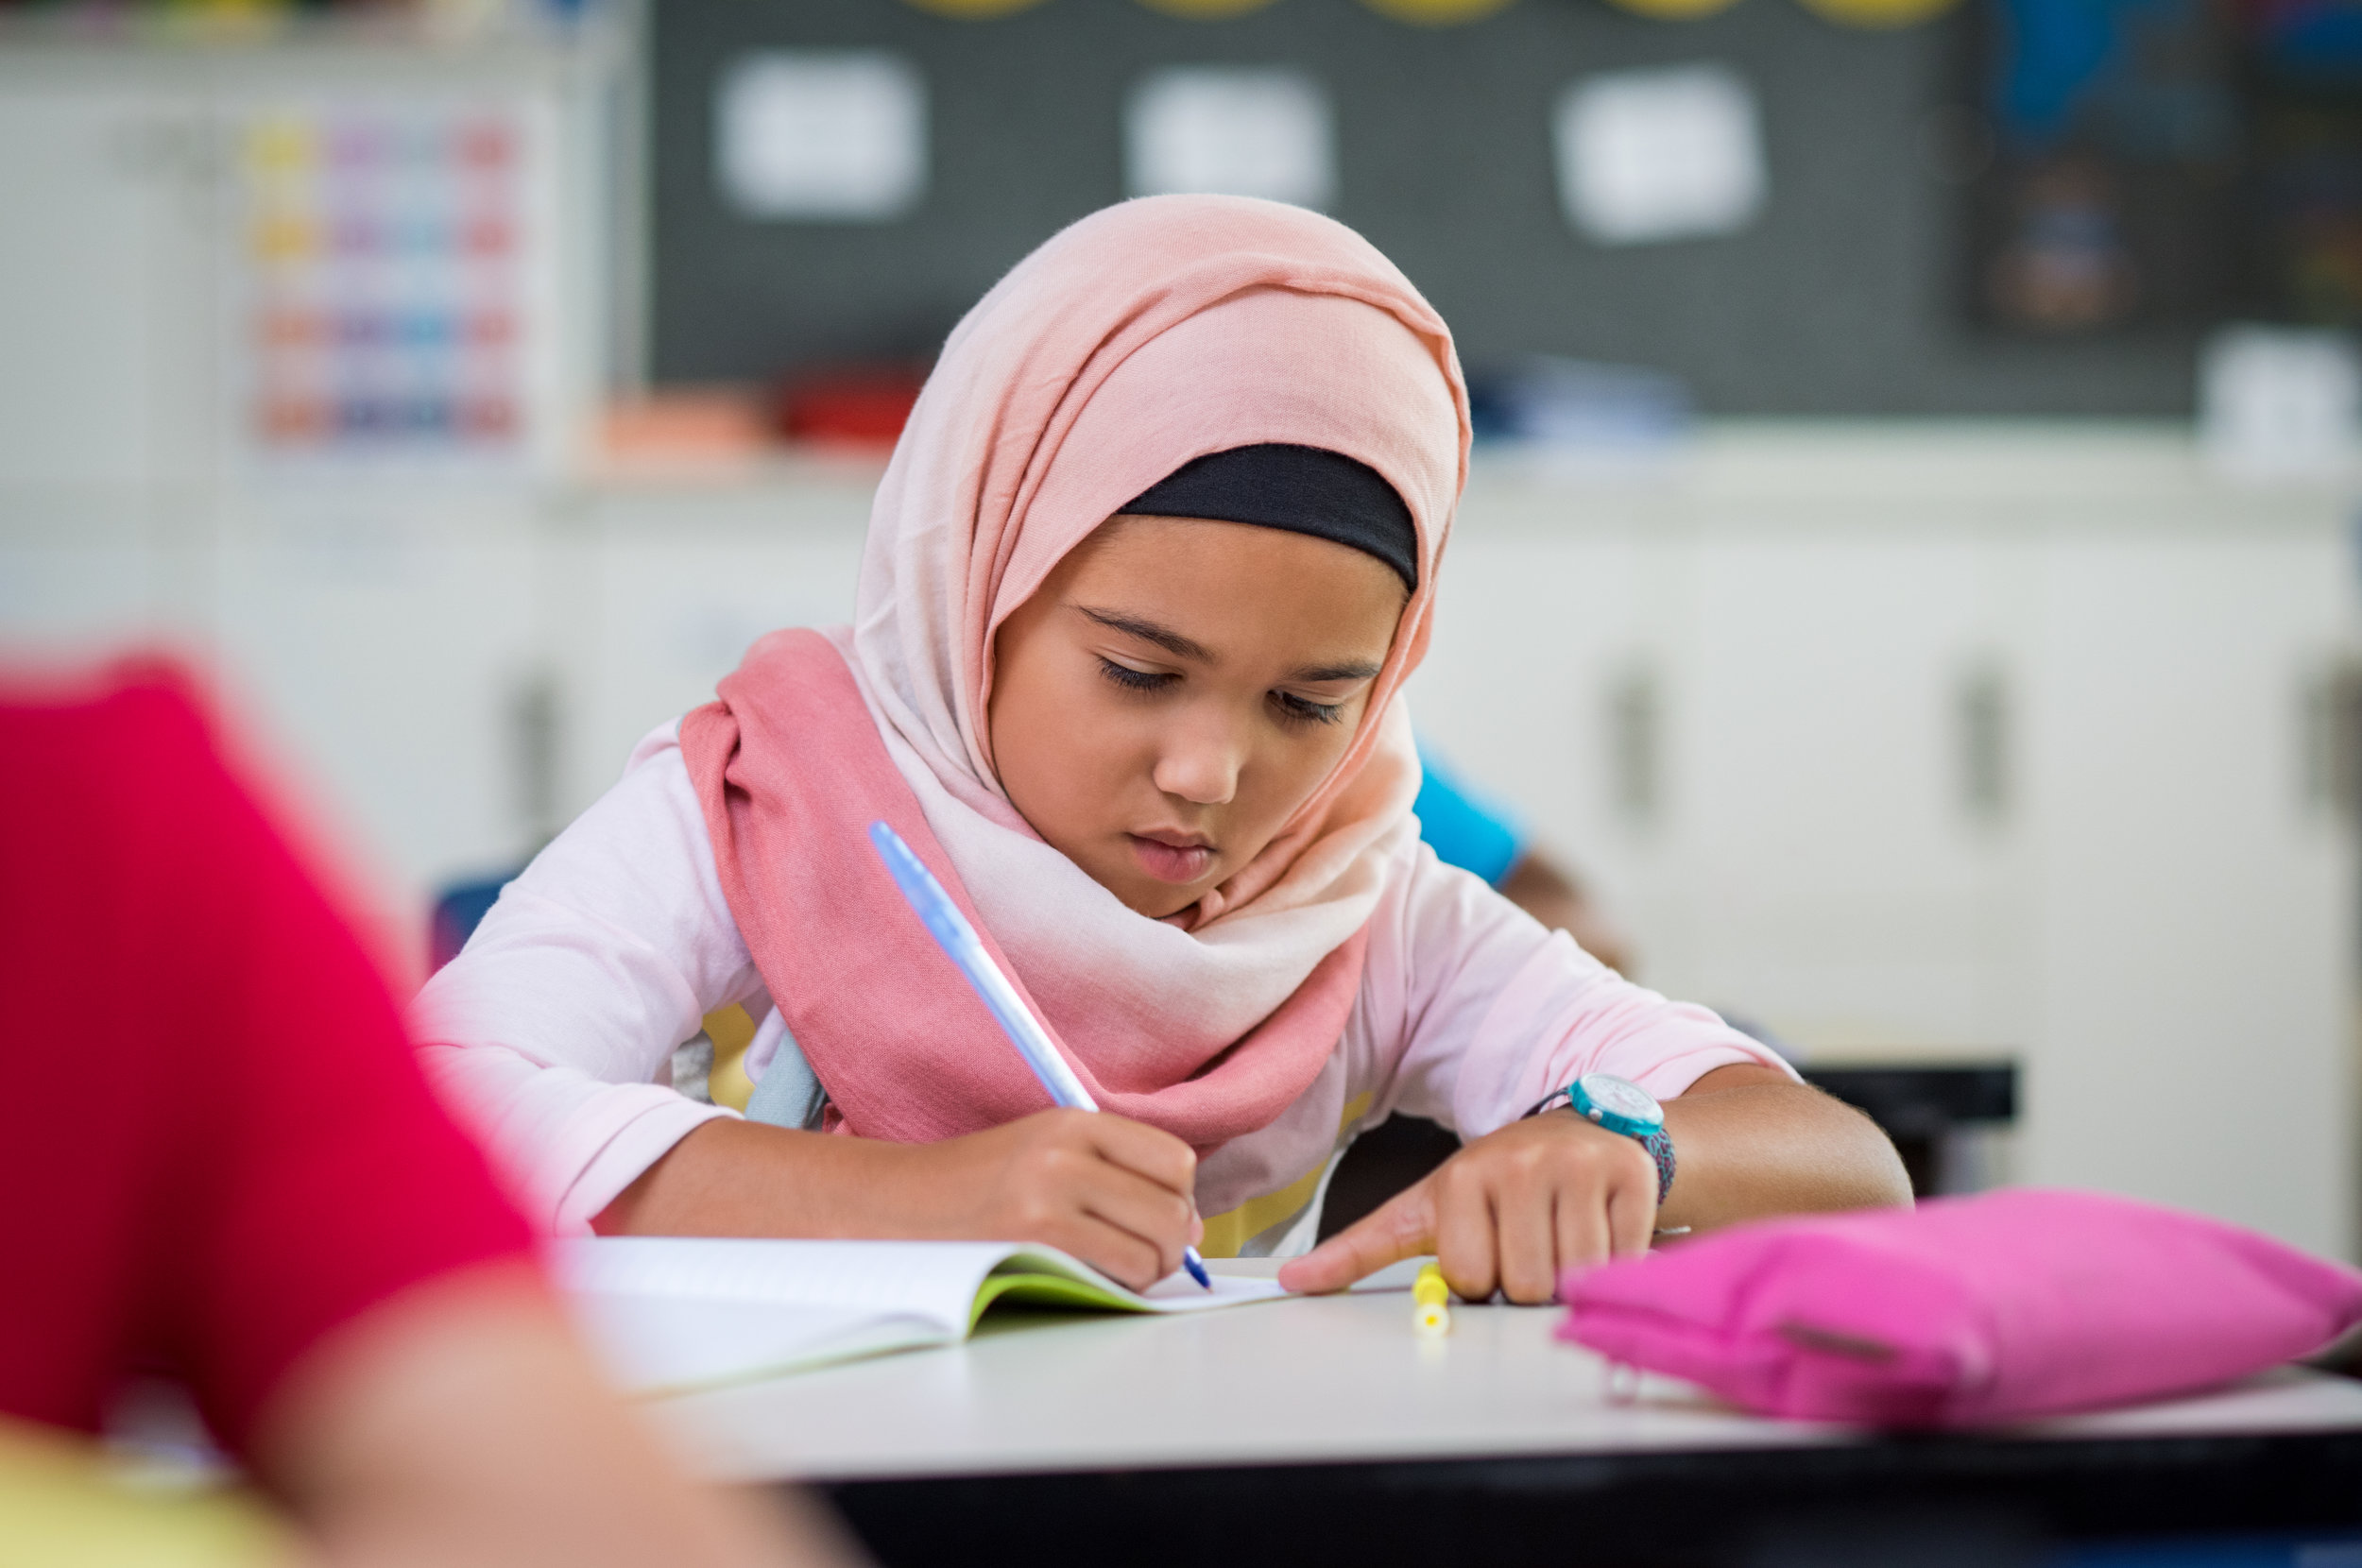 young-girl-wearing-hijab-studying-PZ9S7WR.jpg